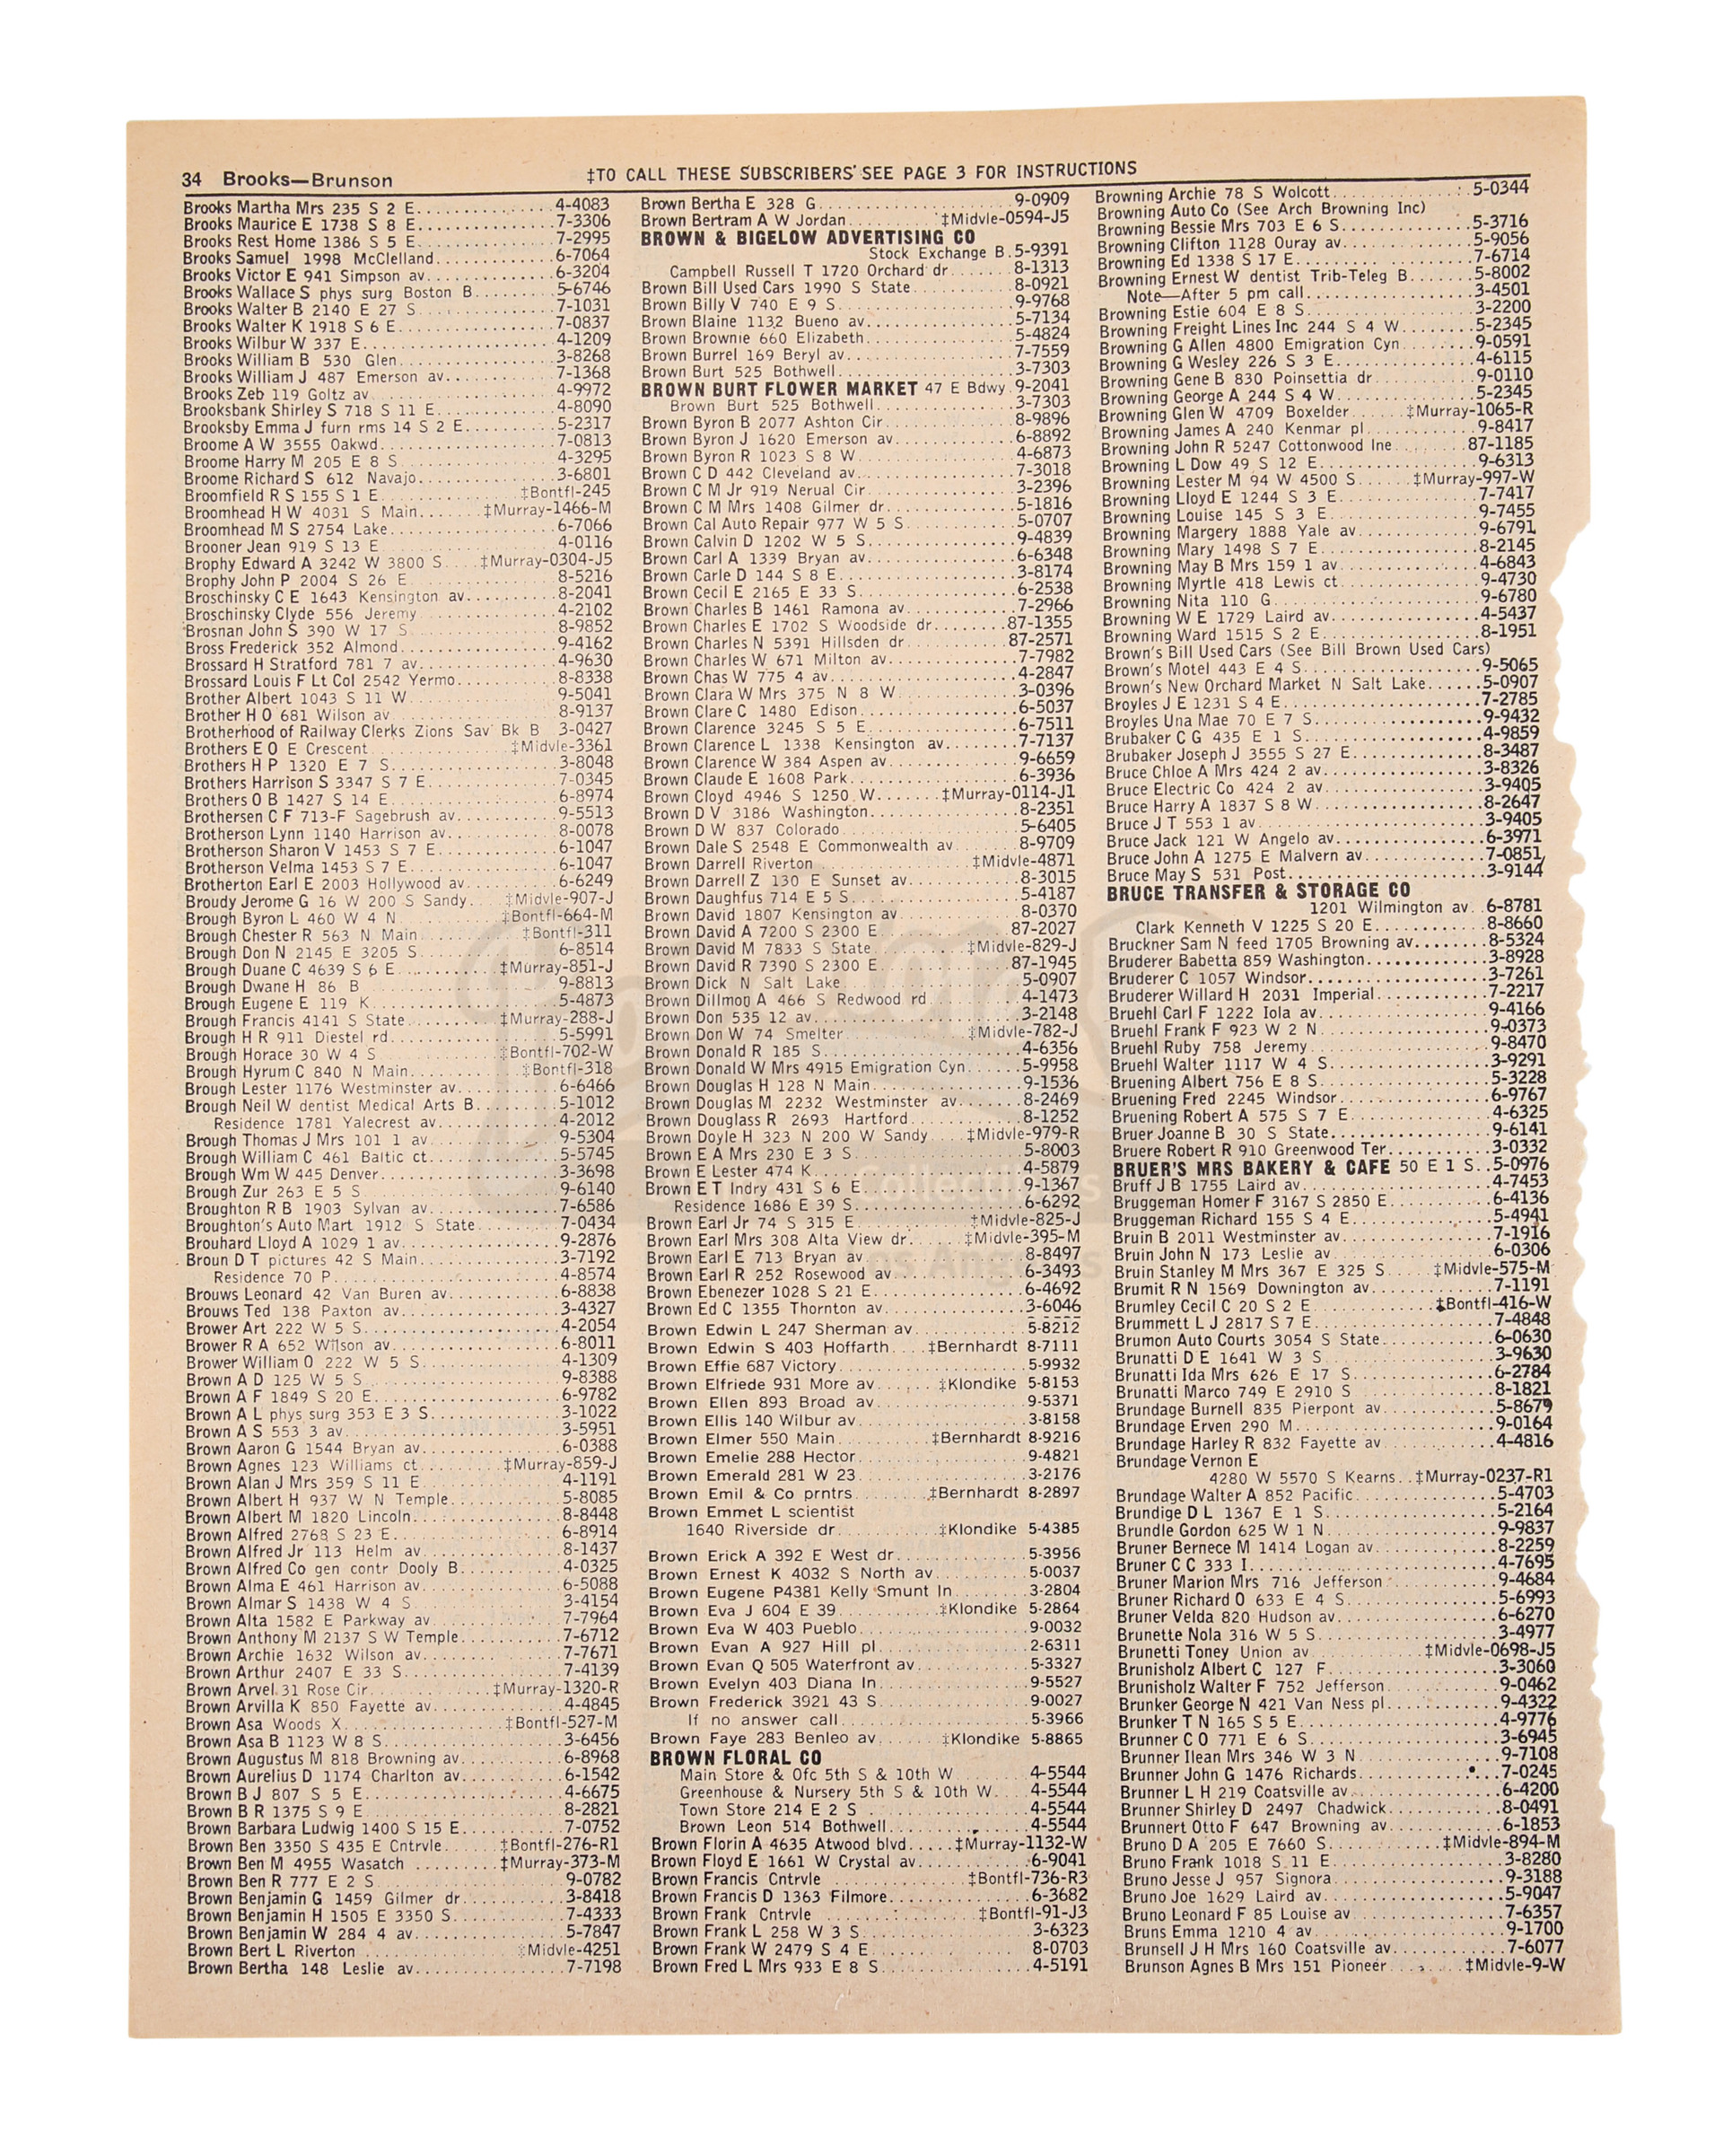 BACK TO THE FUTURE (1985) - Torn Phone Book Page